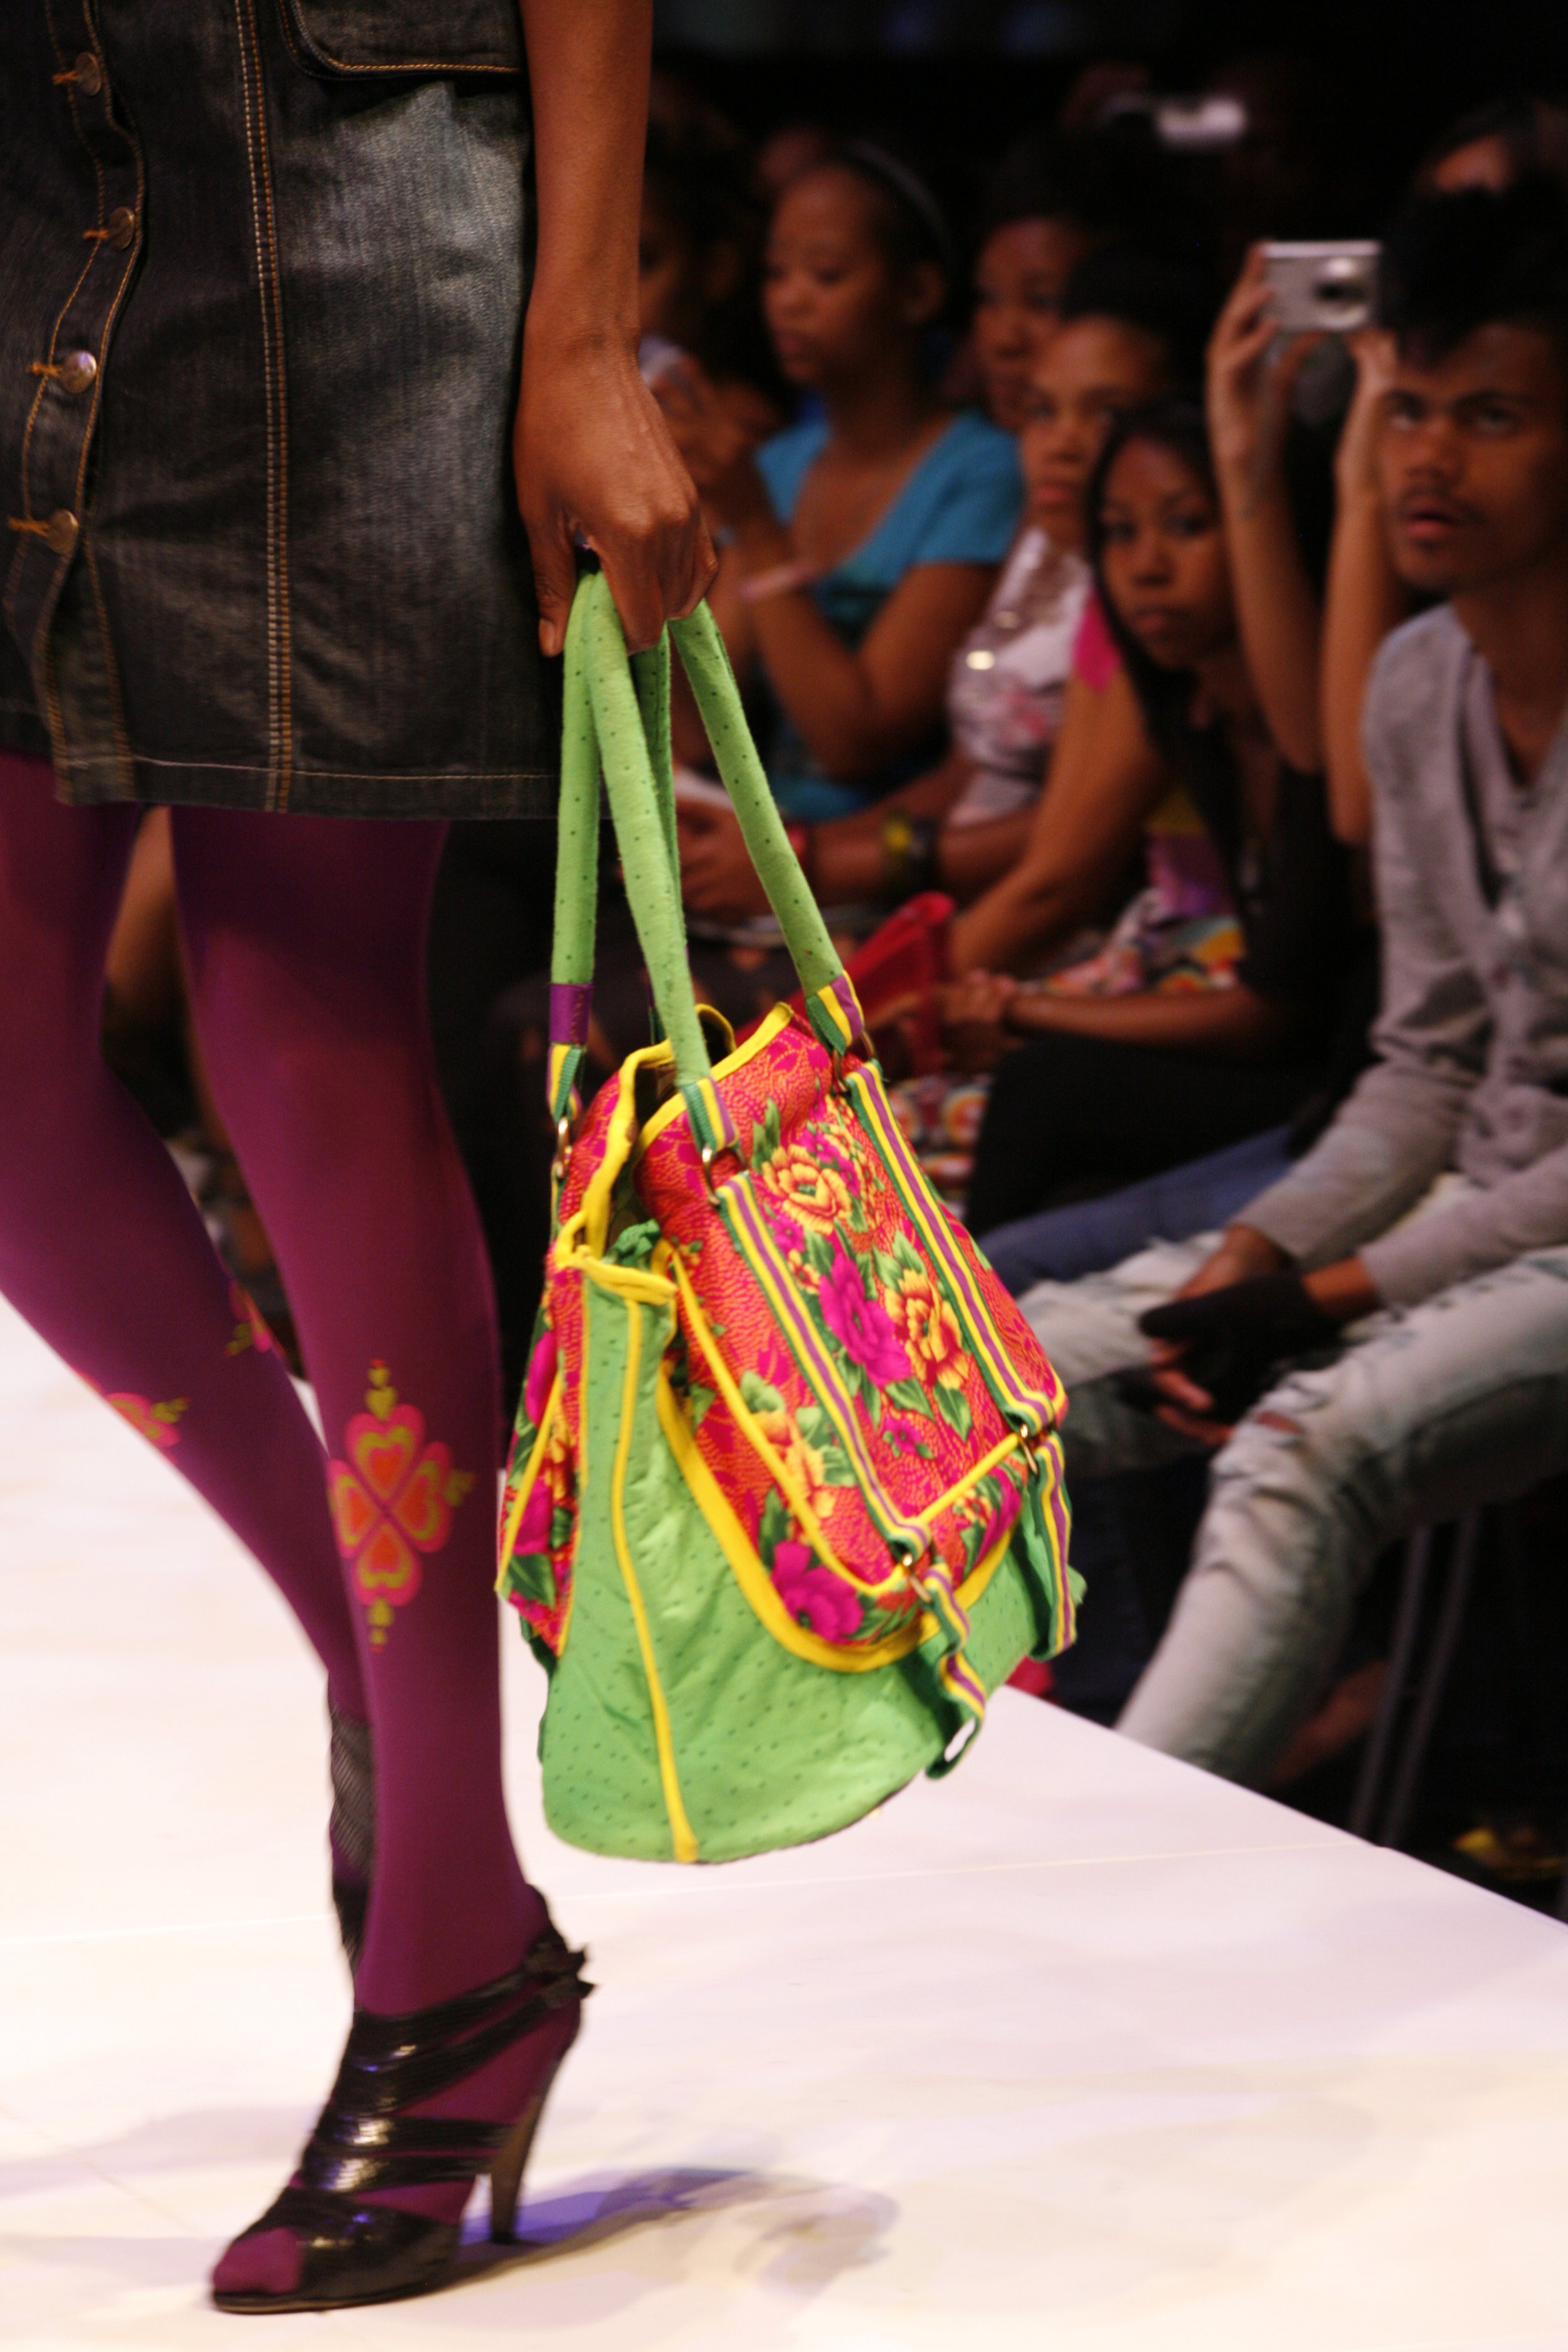 a model on the catwalk at Design Indaba 2008, showing off locally made design accessories. this and the following colour photos by Anita Van Zyl